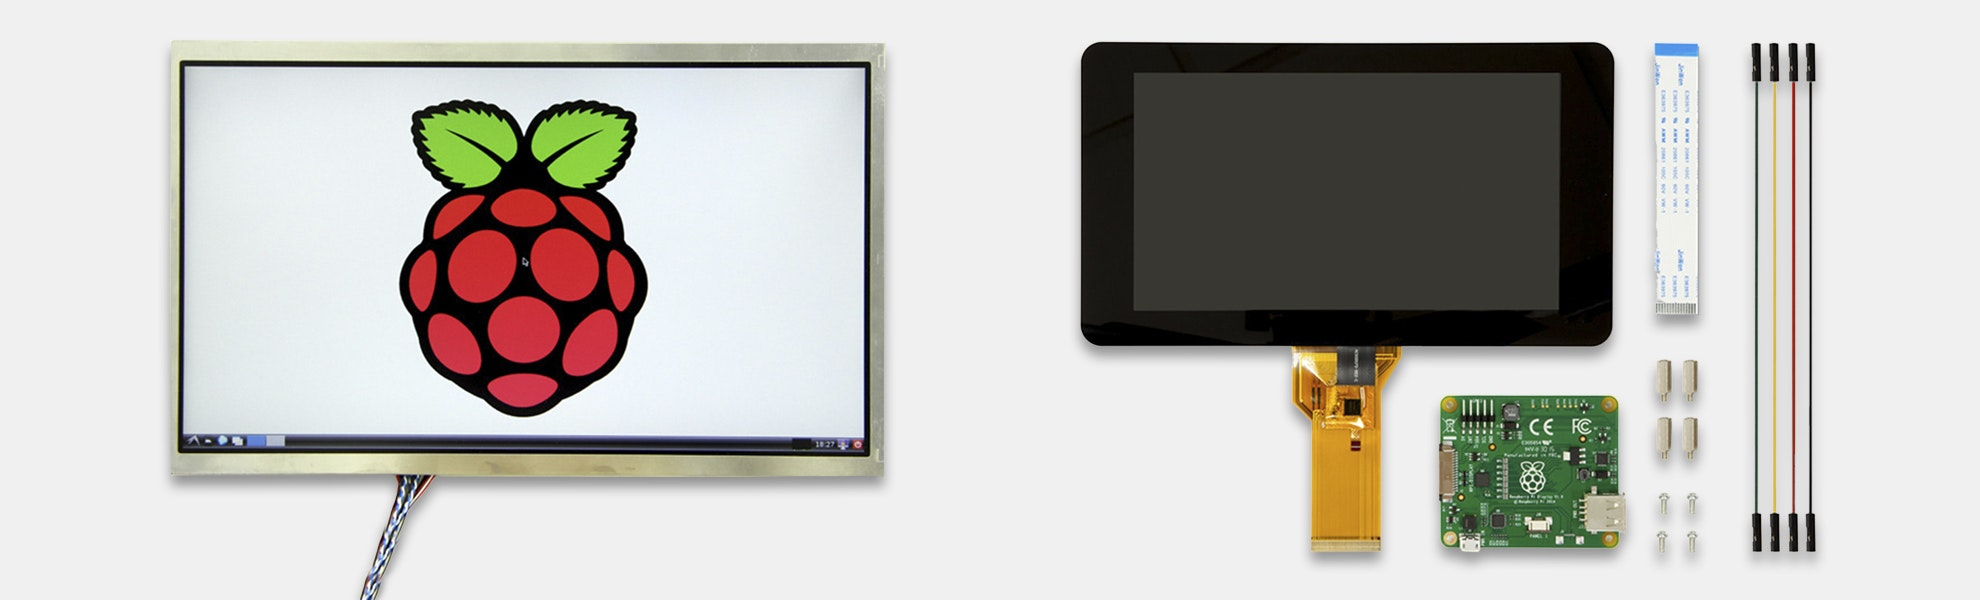 "Seeed 10.1"" Touchscreen Display for Raspberry Pi"